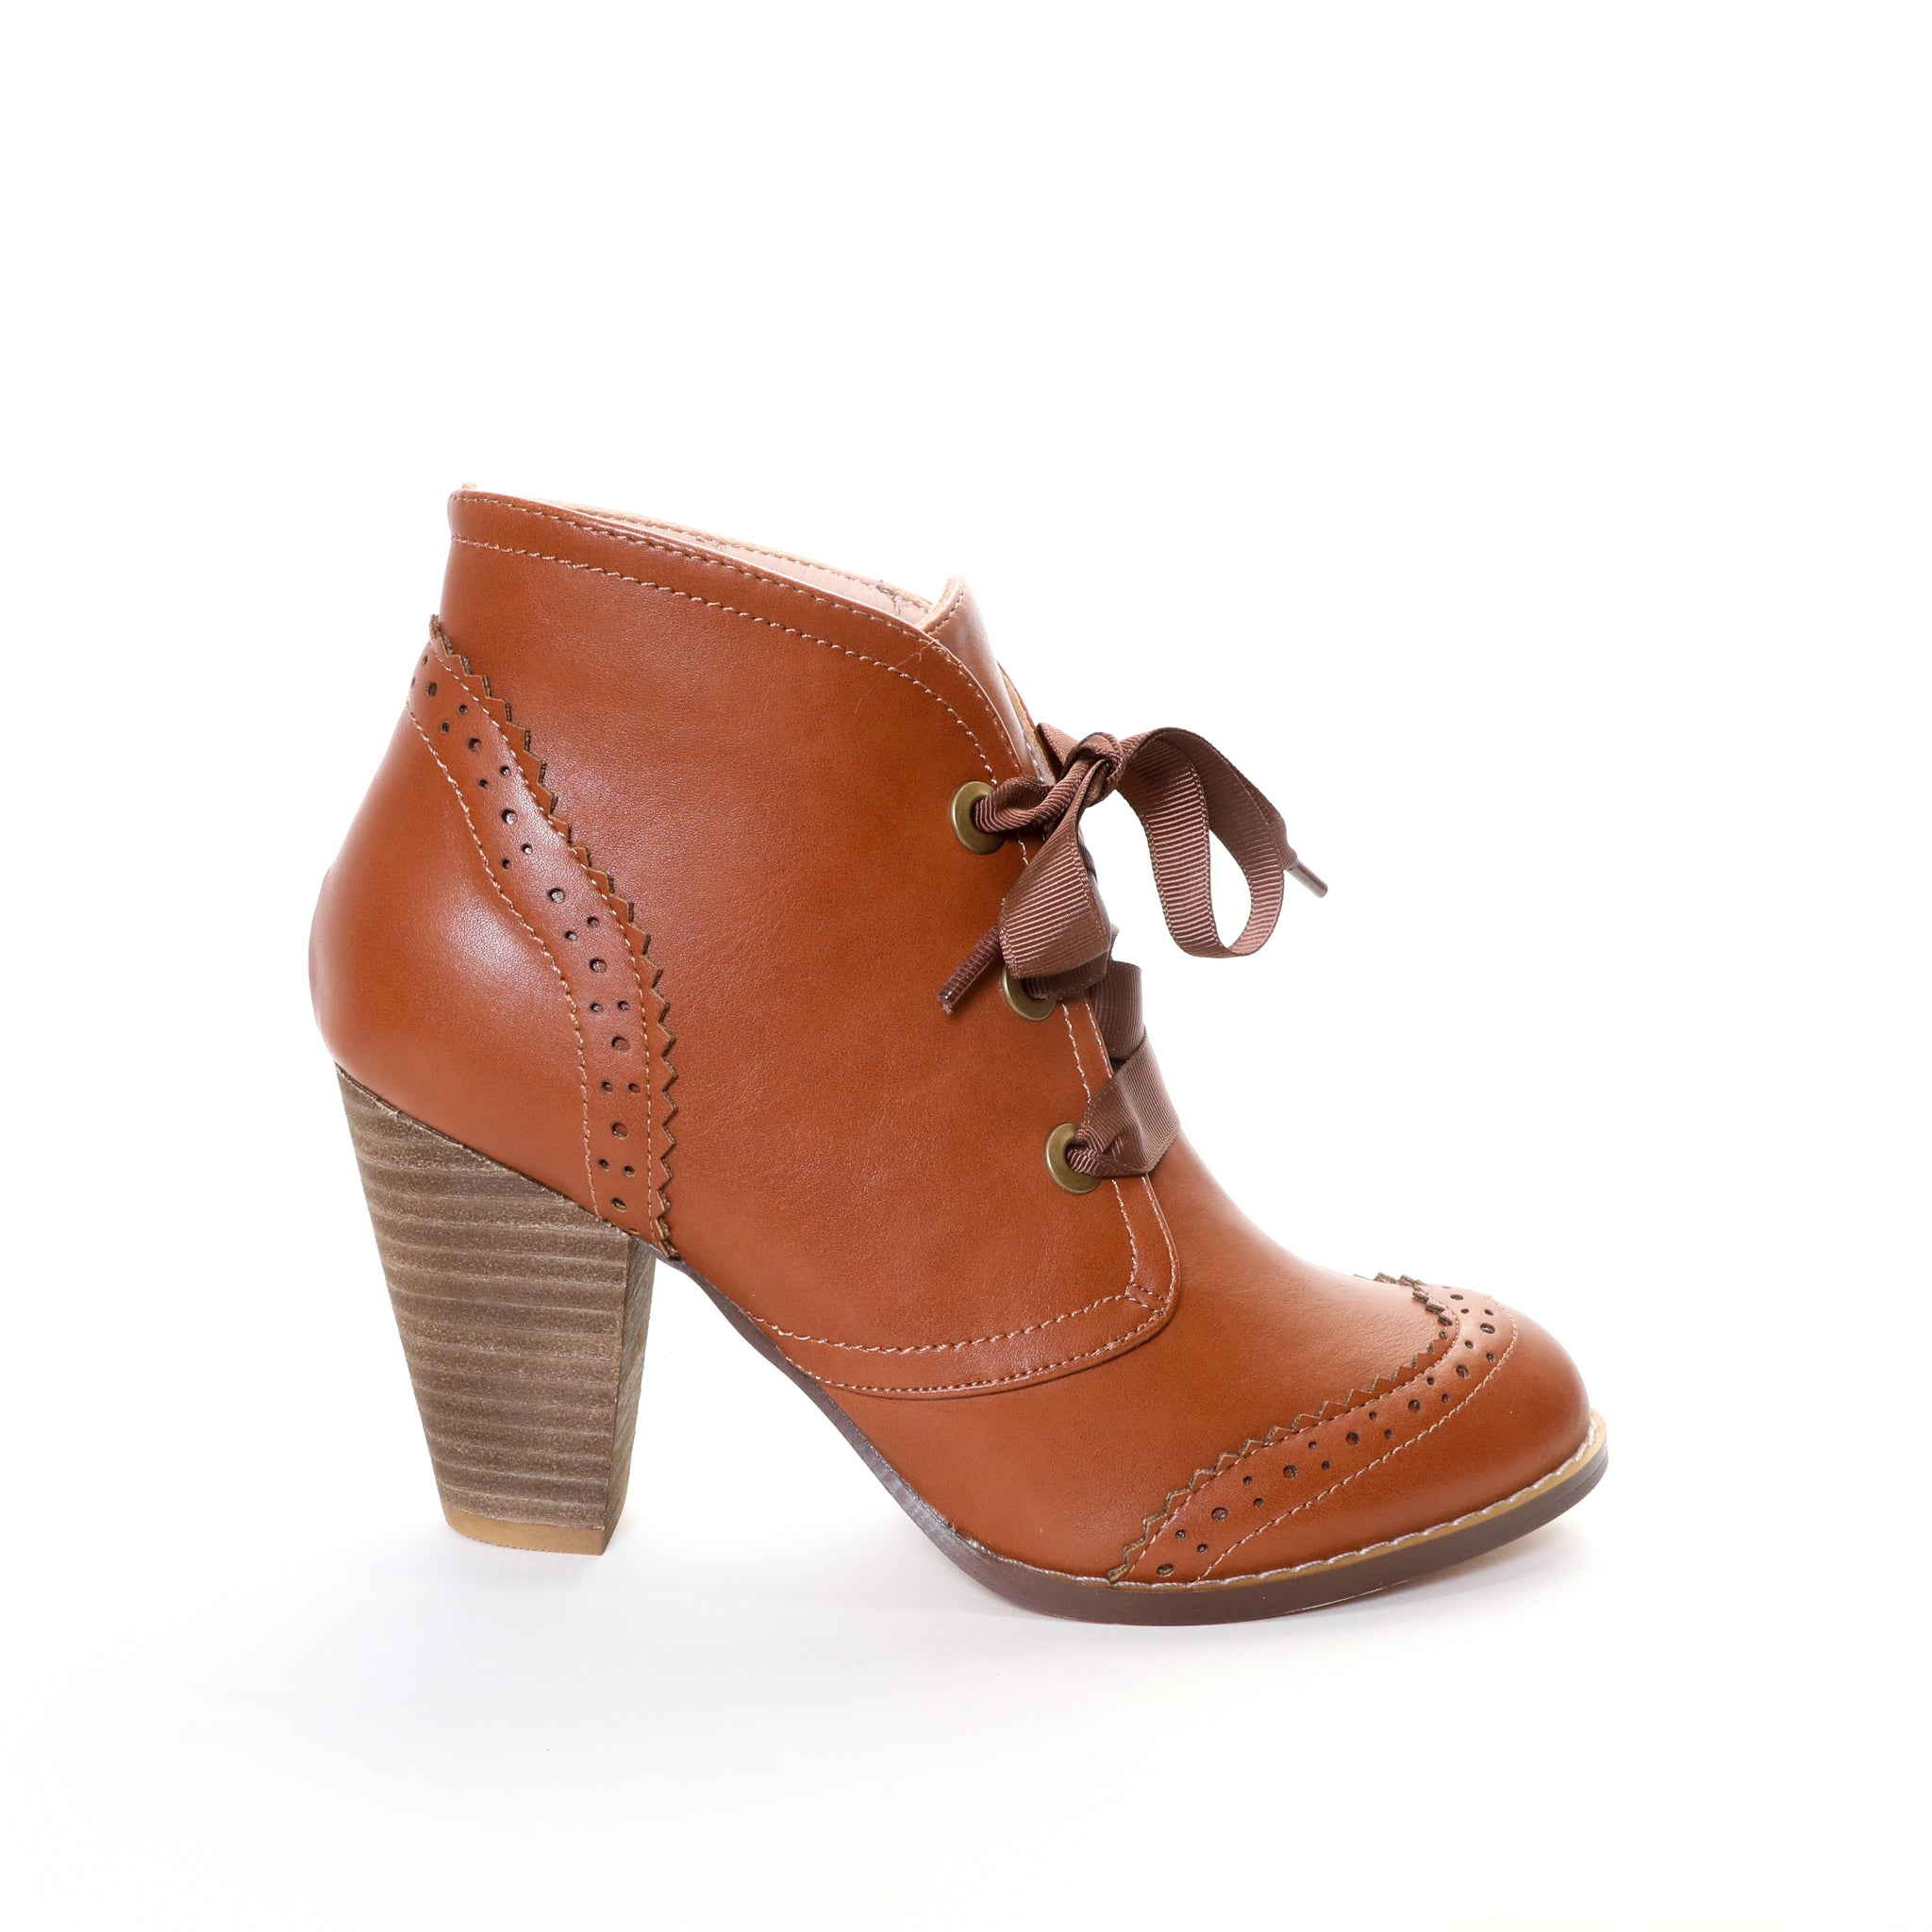 Melanie by Dolce Nome | Lace-Up Ankle Boots in Tan (side view)